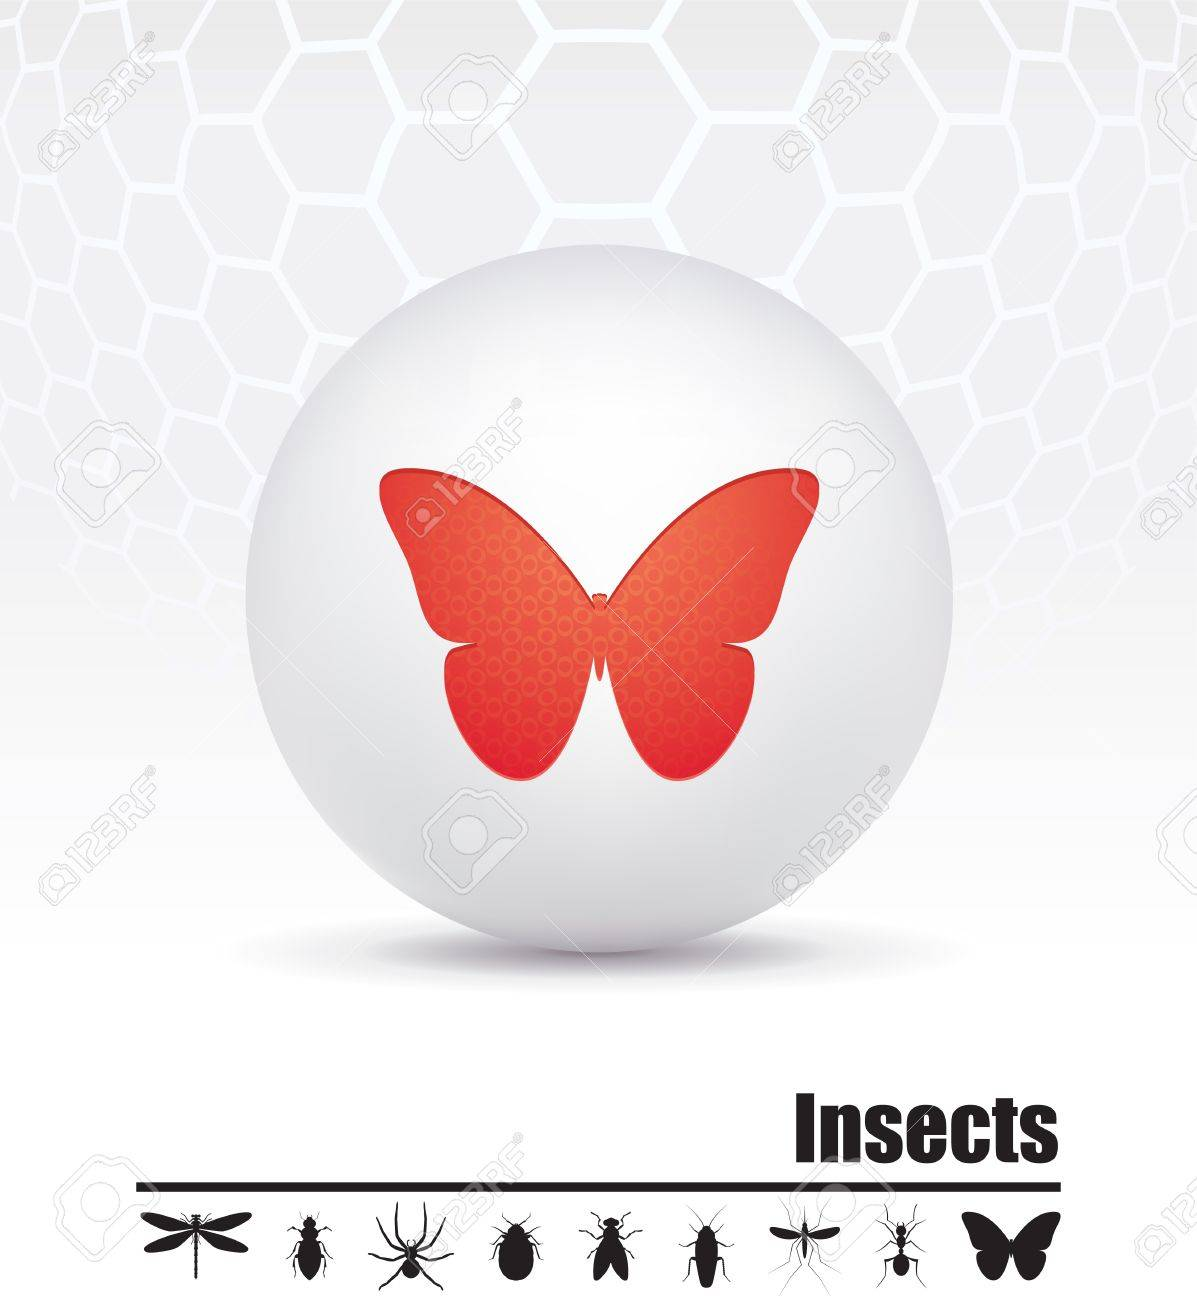 icons insects Stock Vector - 15659814